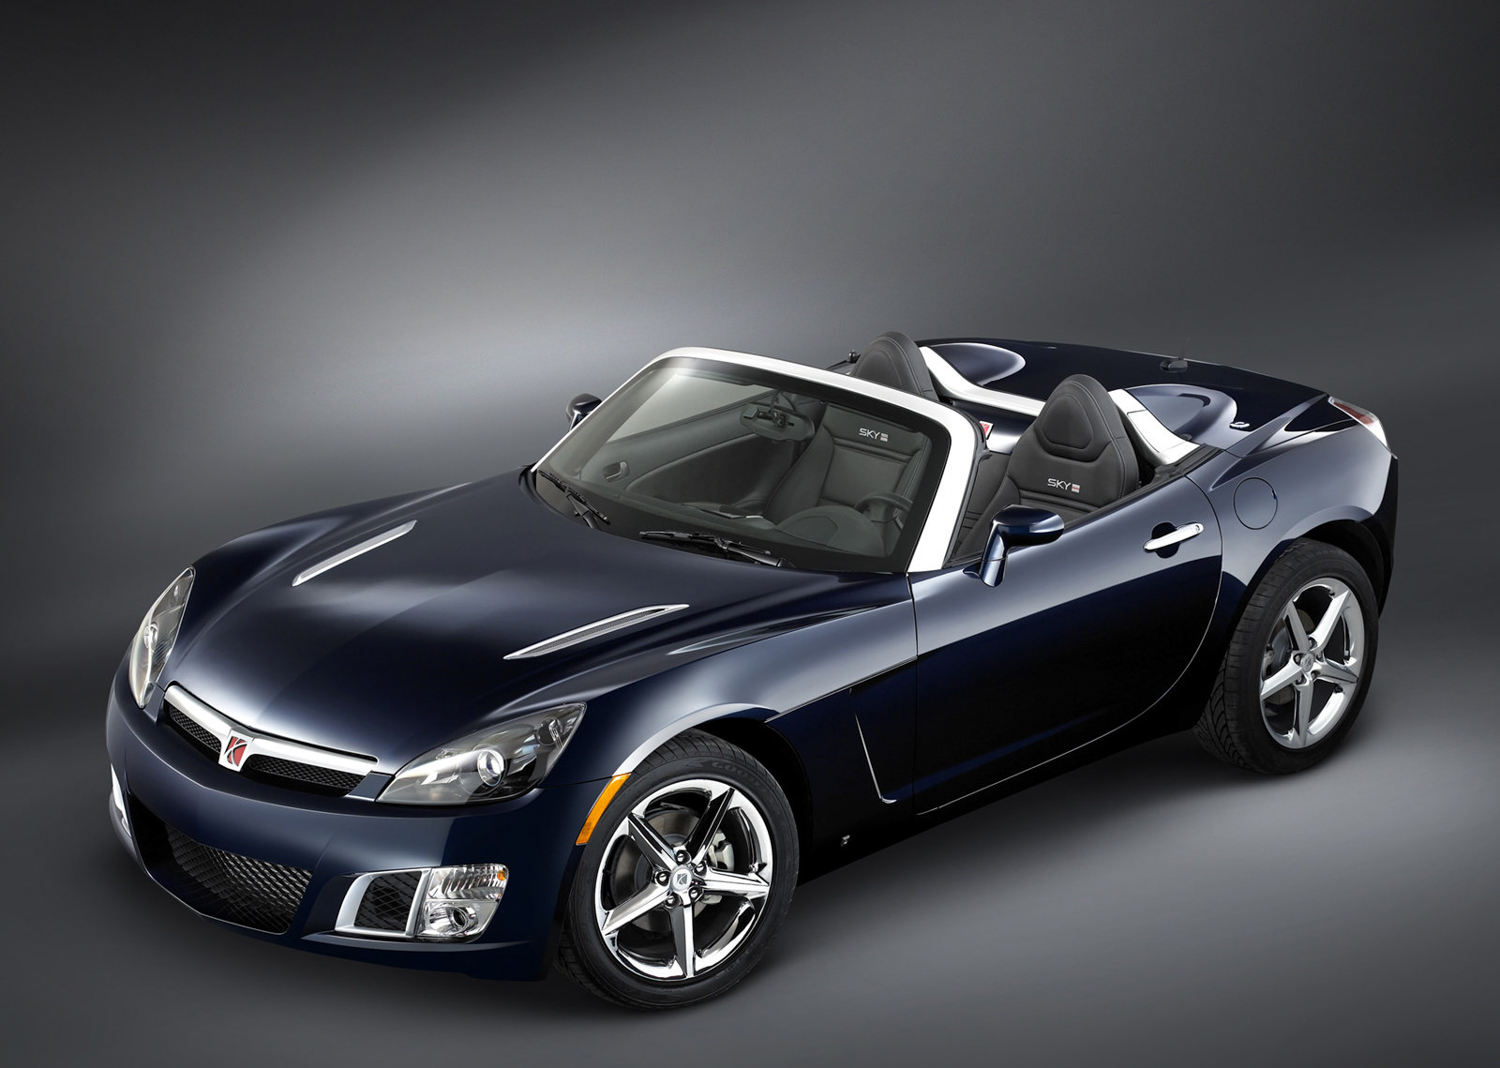 2007 Saturn Sky Red Line 3/4 front high